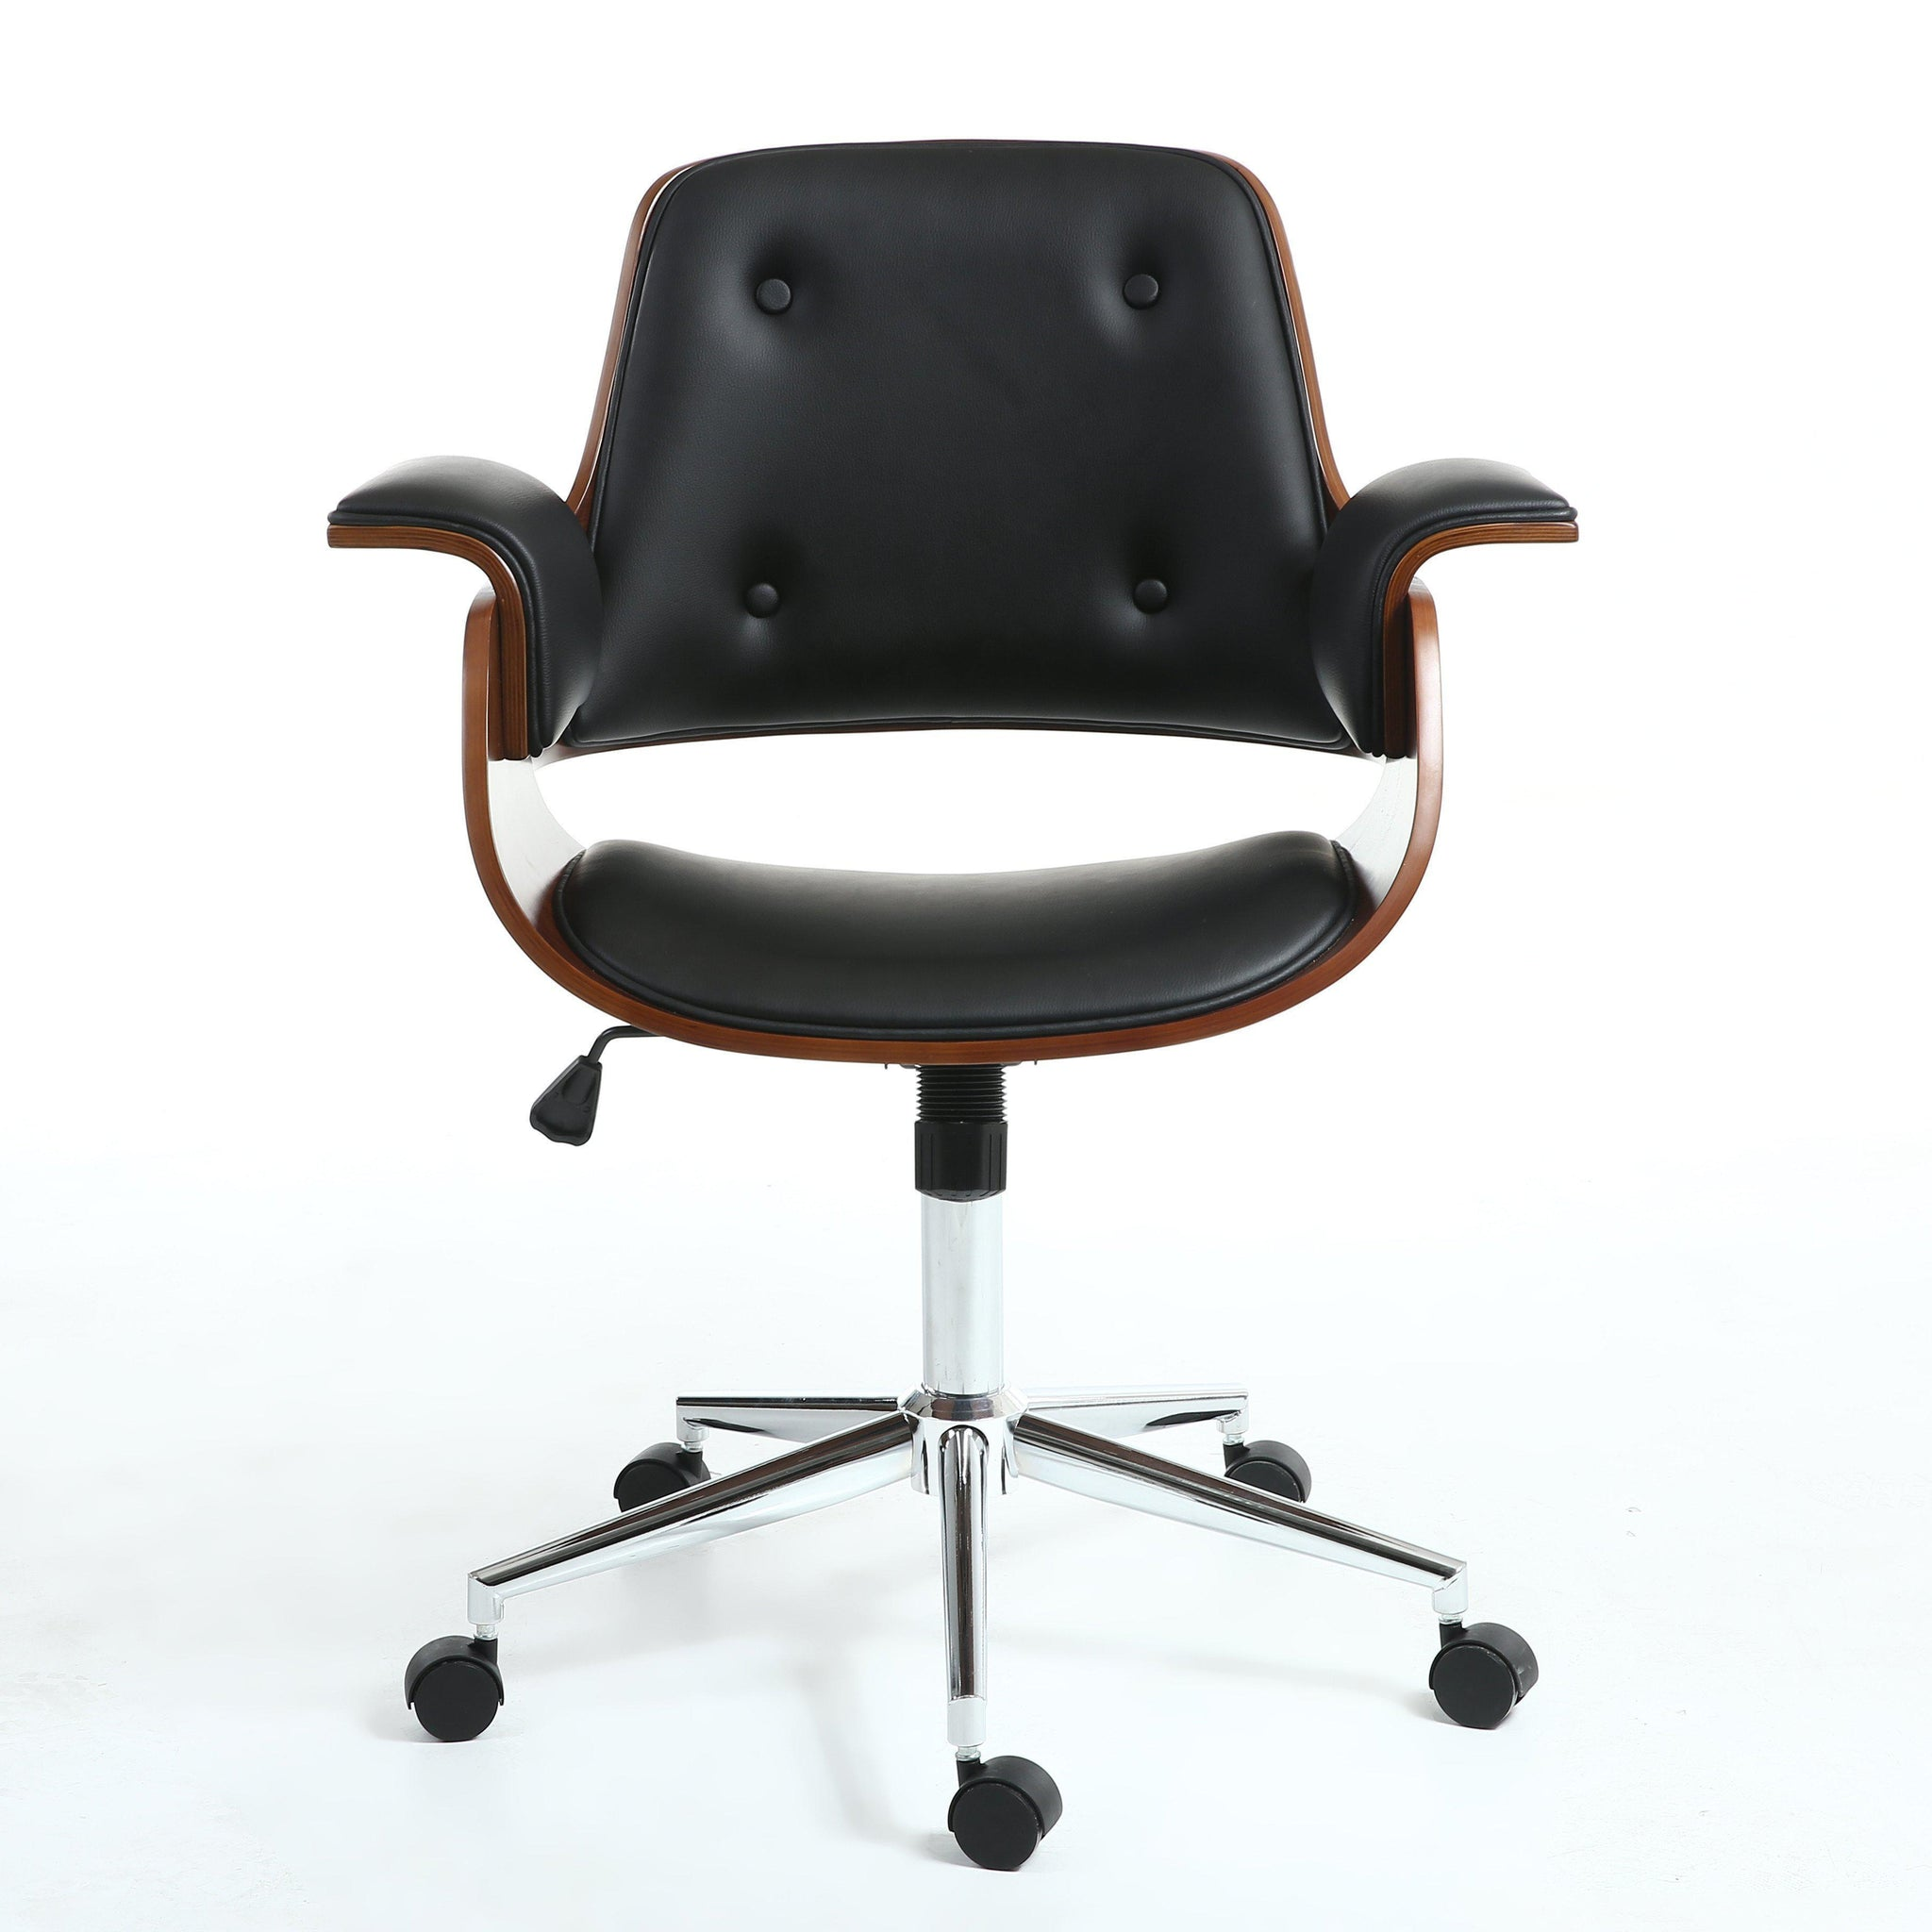 Kato Black and Walnut Office Chair-office chair contemporary design-shankar-GoFurn Furniture Store Kent